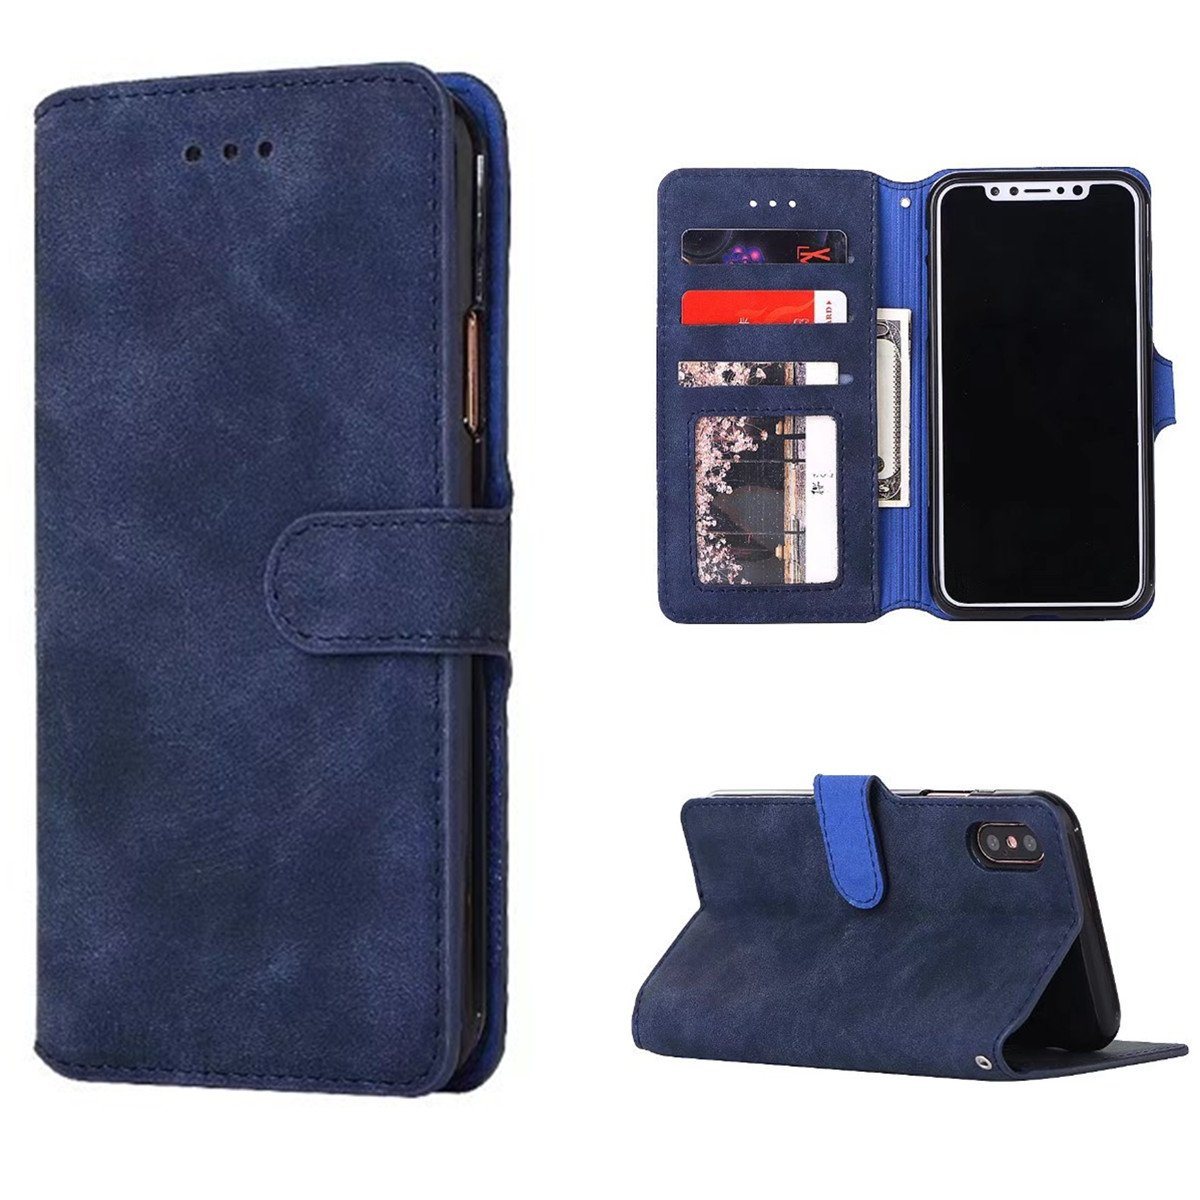 iPhone X Case, iPhone X Wallet Case, Genuine Leather Folio Flip Cover Stand Wallet Case with Business Card Holder for iPhone X (Blue)